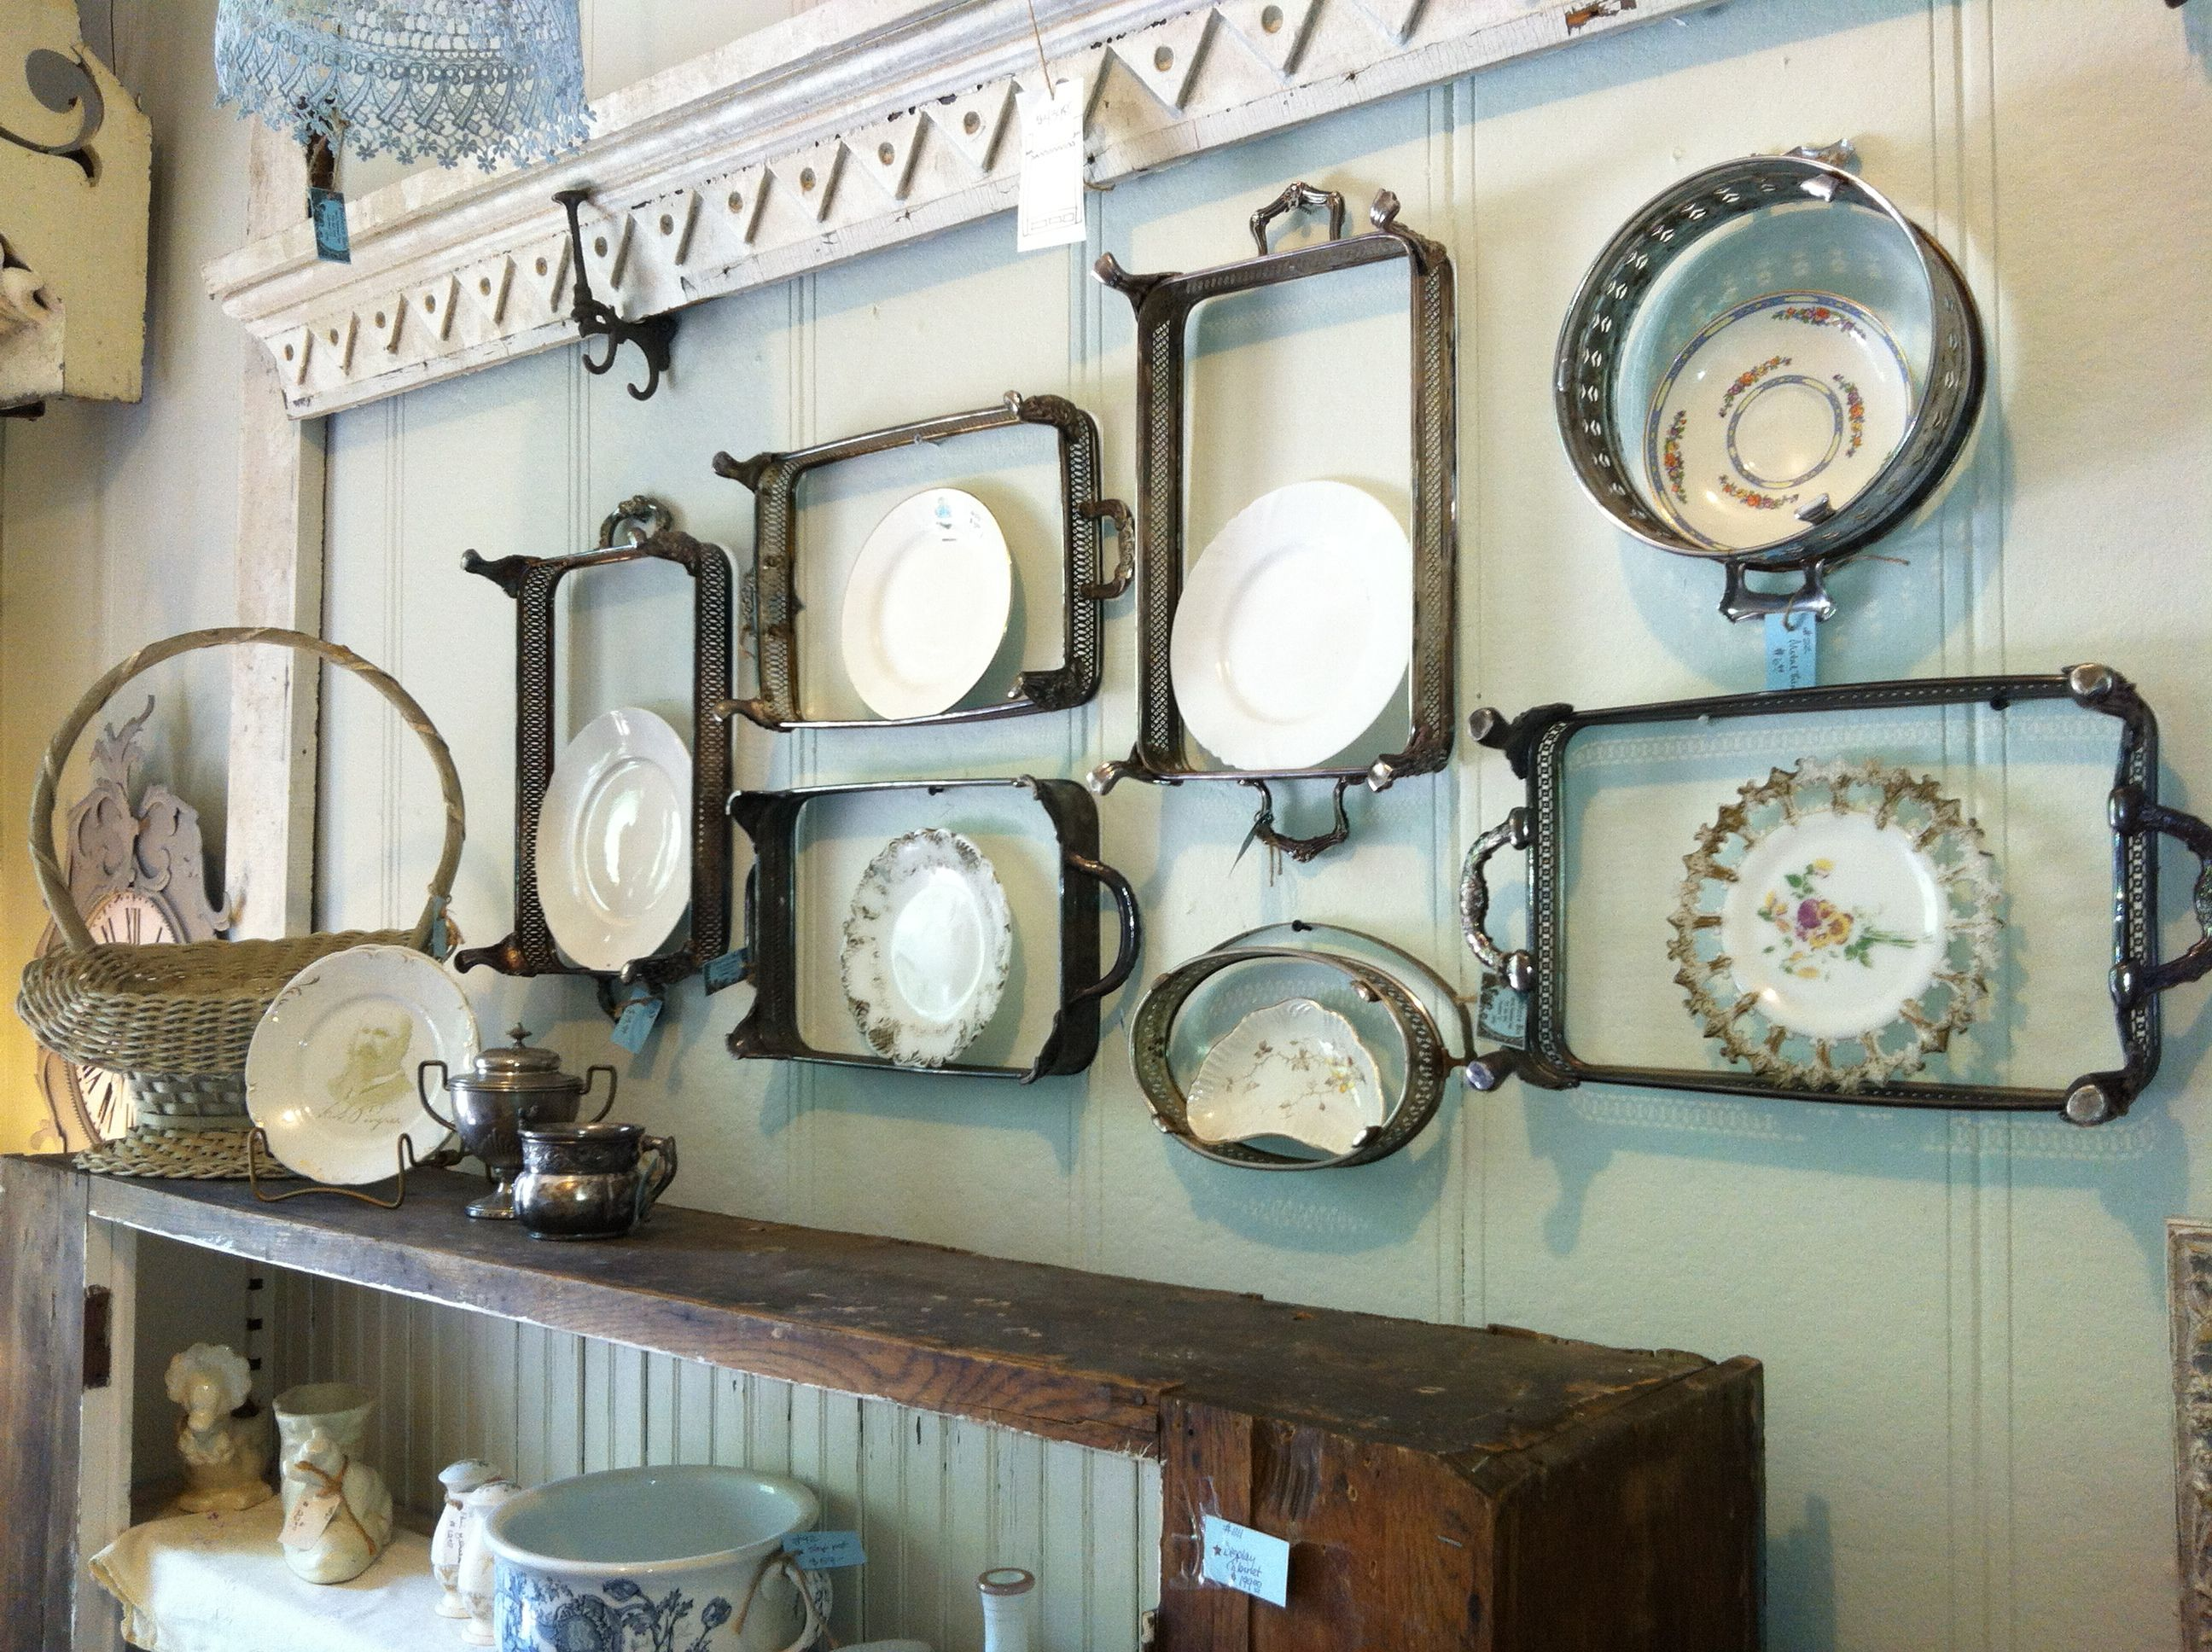 Vintage silver casserole dish holders repurposed into plate rack frames; For ideas and goods shop at Estate ReSale ReDesign Bonita Springs FL & Vintage silver casserole dish holders repurposed into plate rack ...